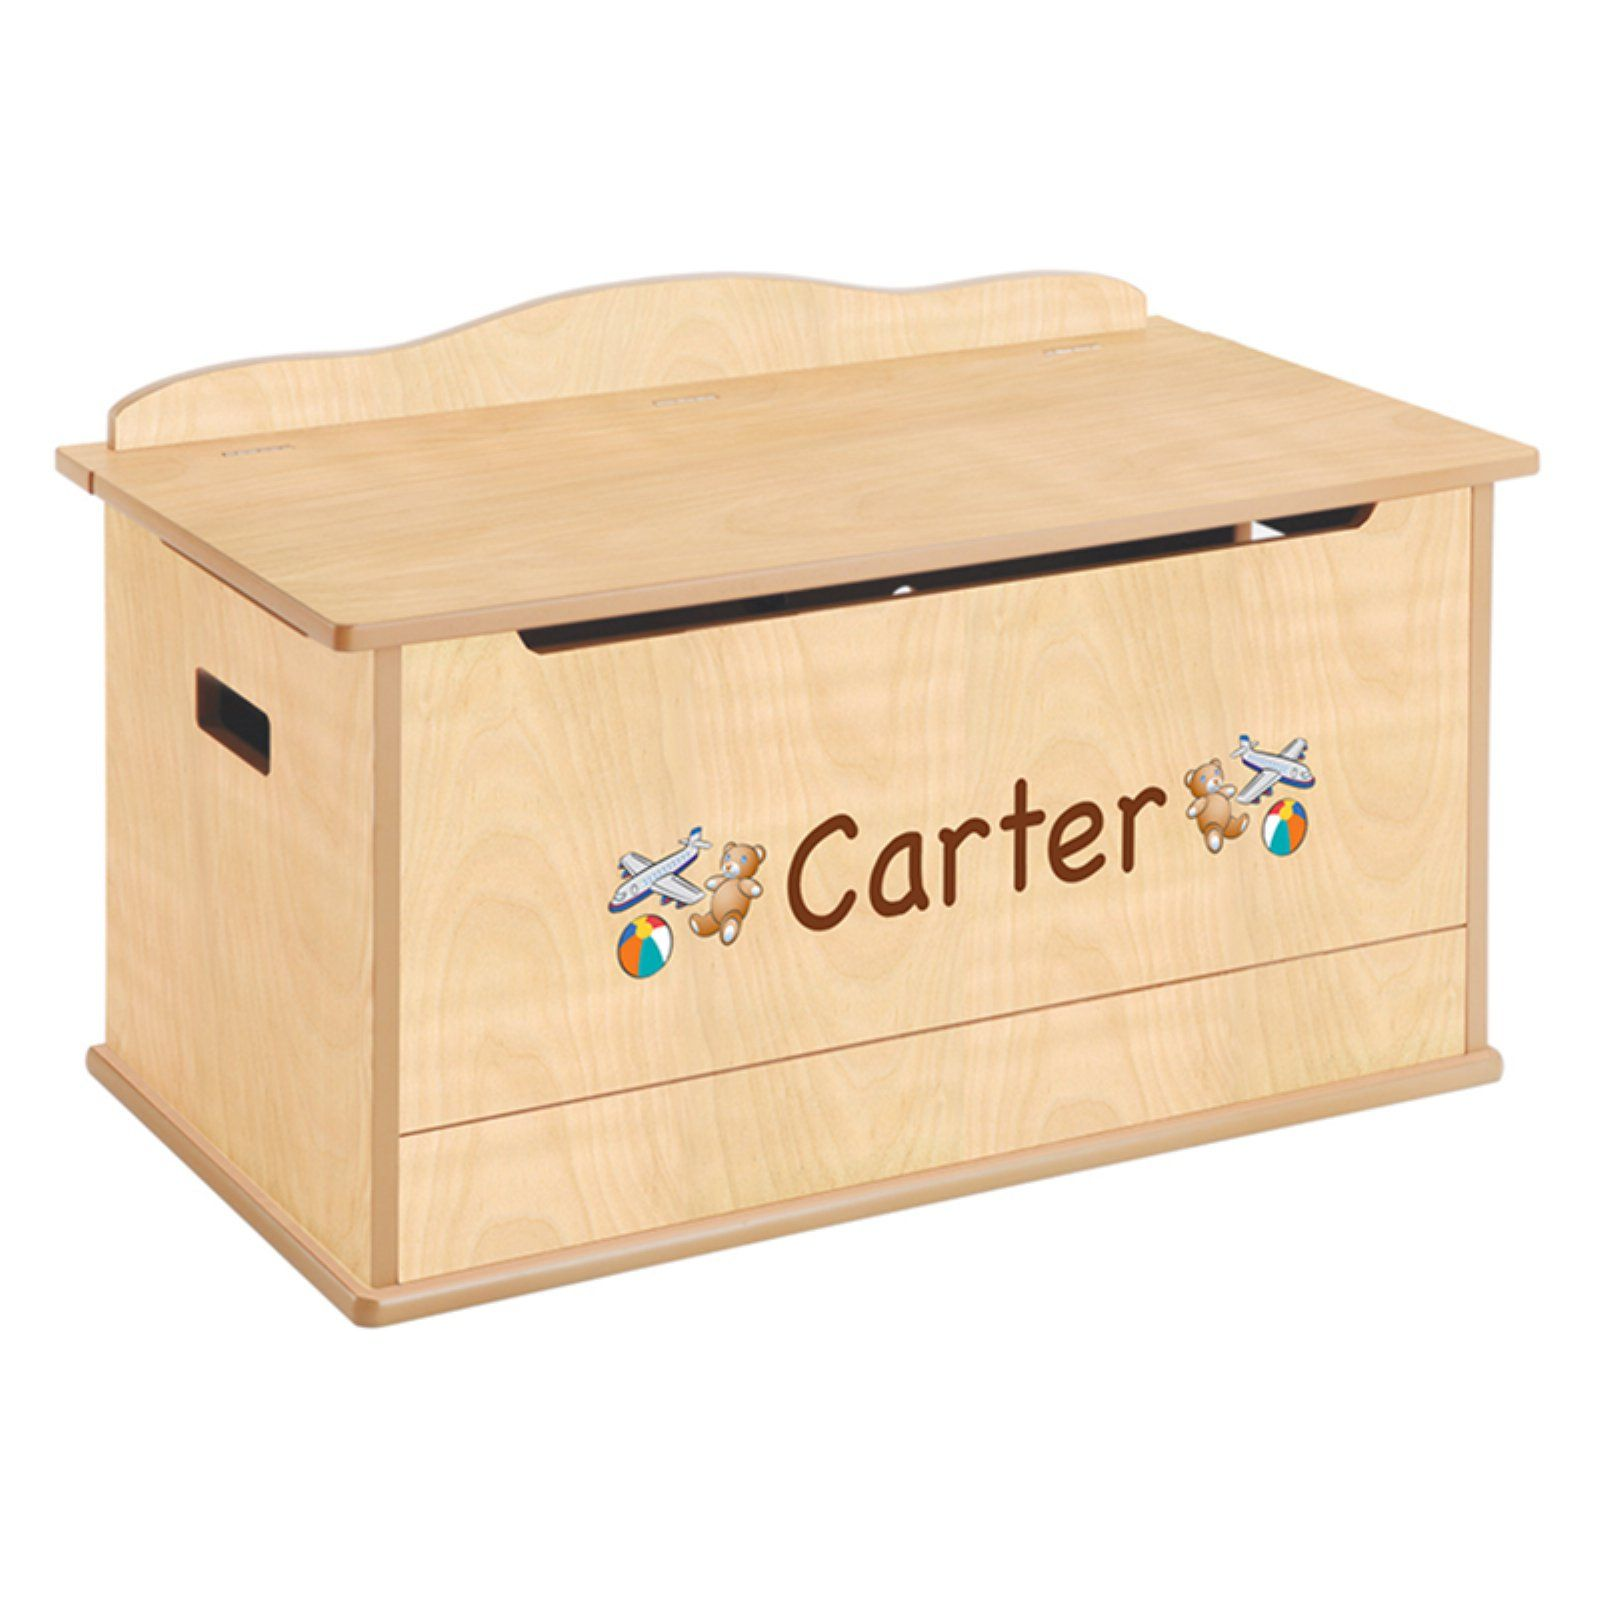 Excellent Guidecraft Expressions Natural Toy Box With Personalization Dailytribune Chair Design For Home Dailytribuneorg